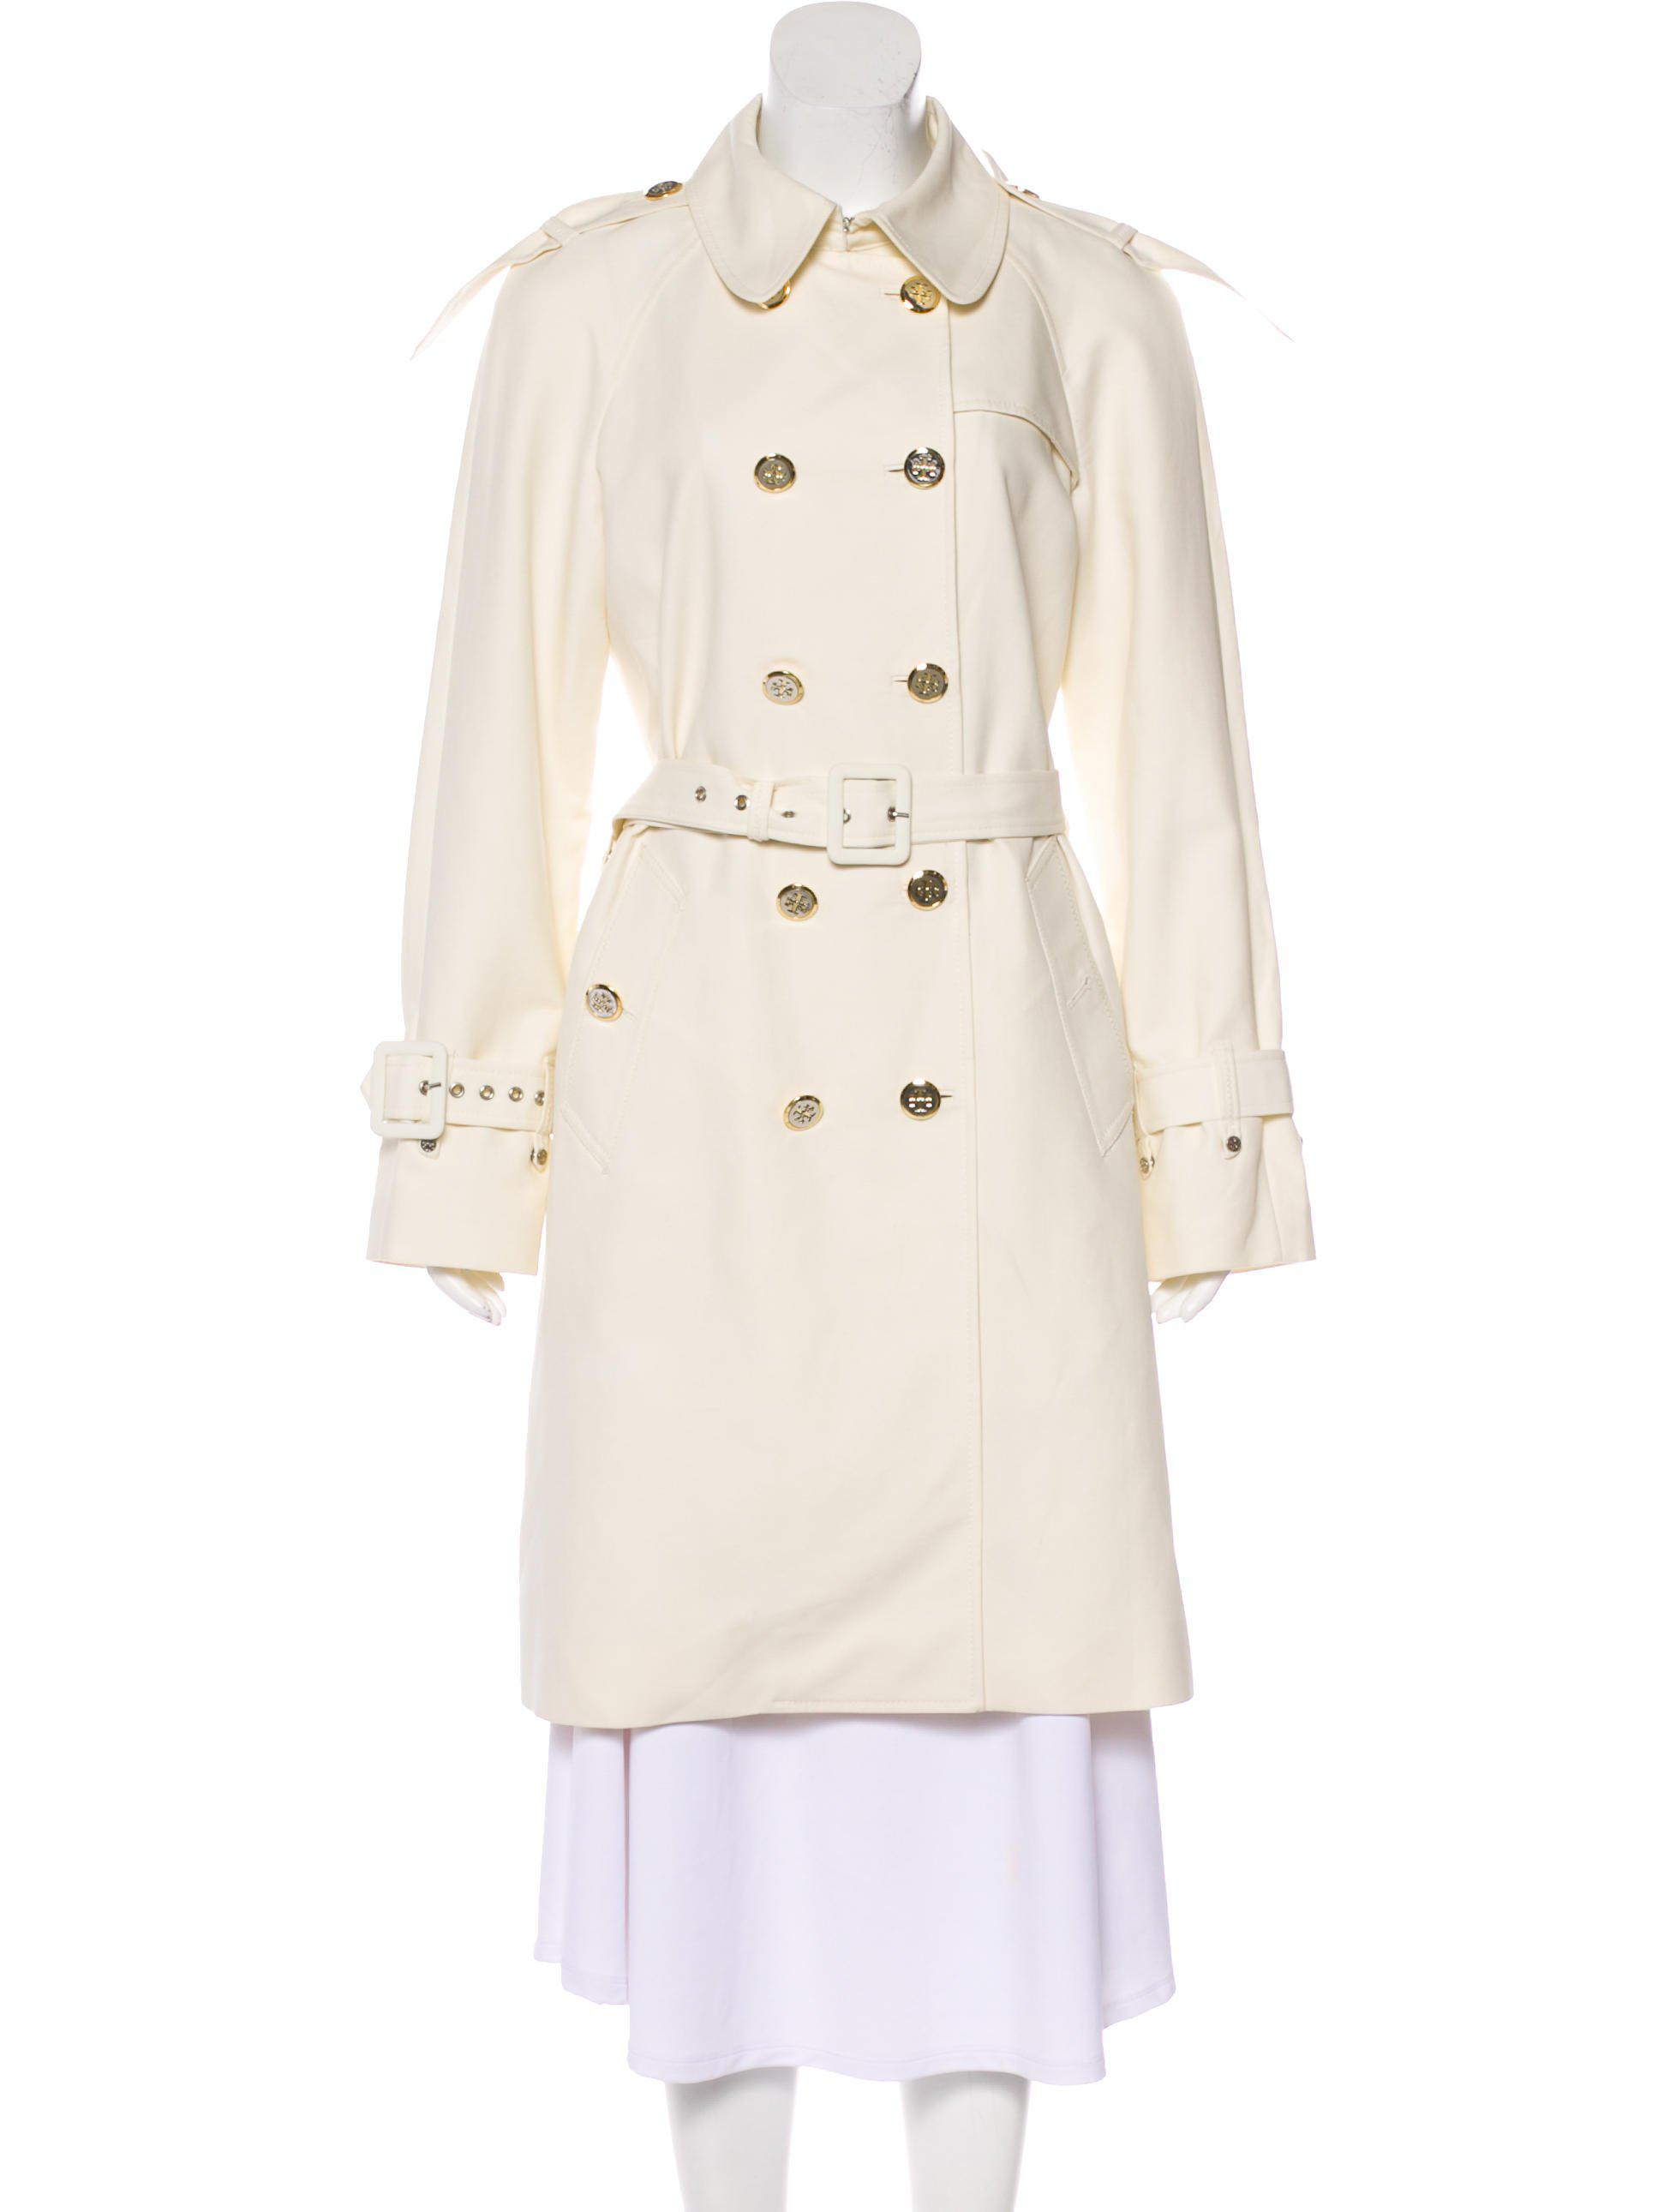 c3f27a4a9d1c Lyst - Tory Burch Double-breasted Trench Coat in Yellow